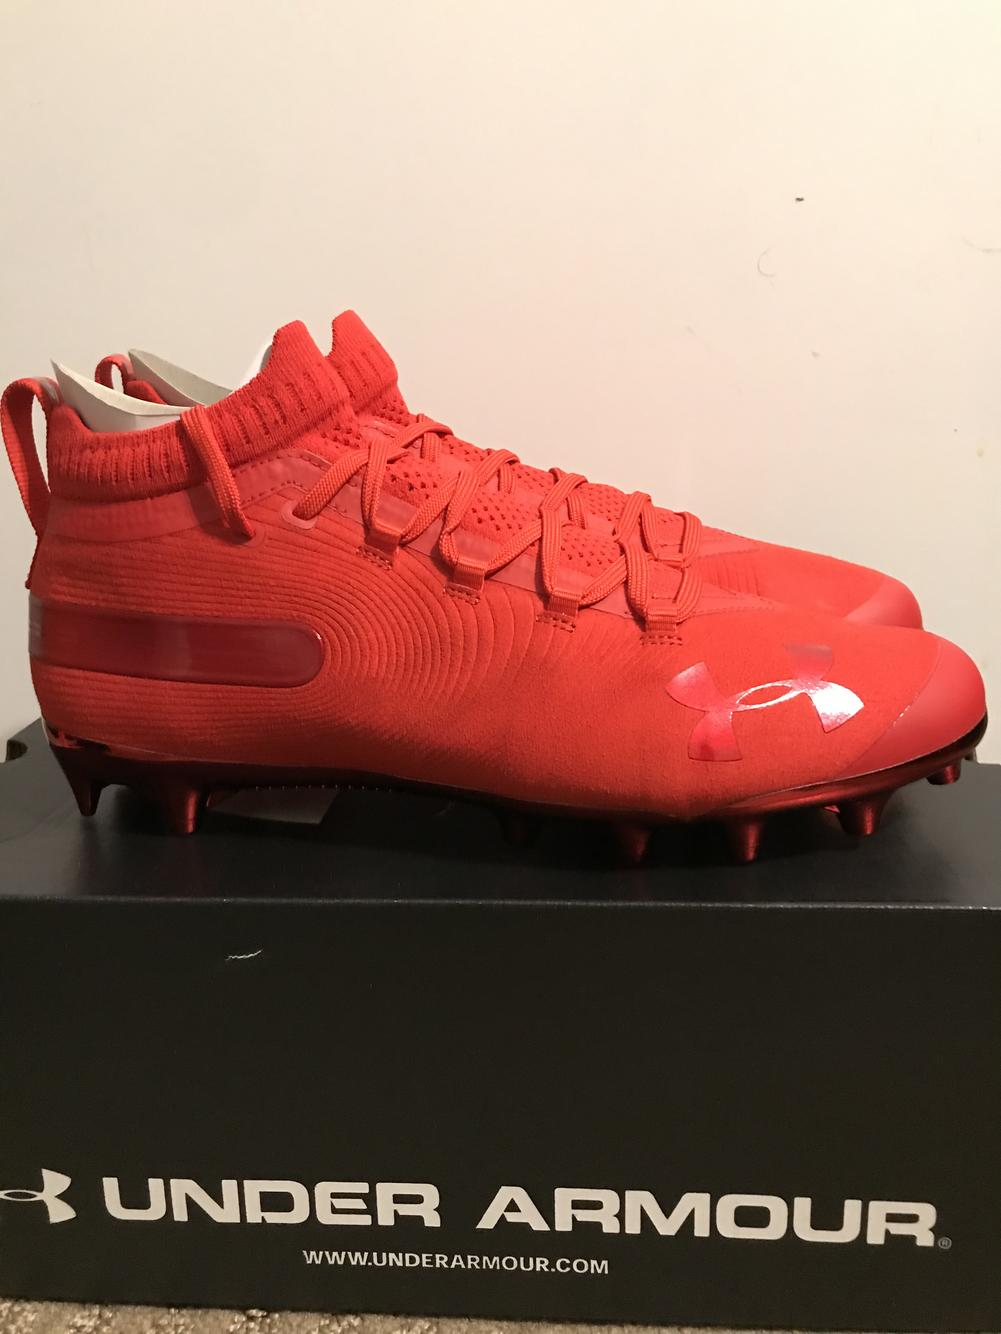 all red under armour football cleats